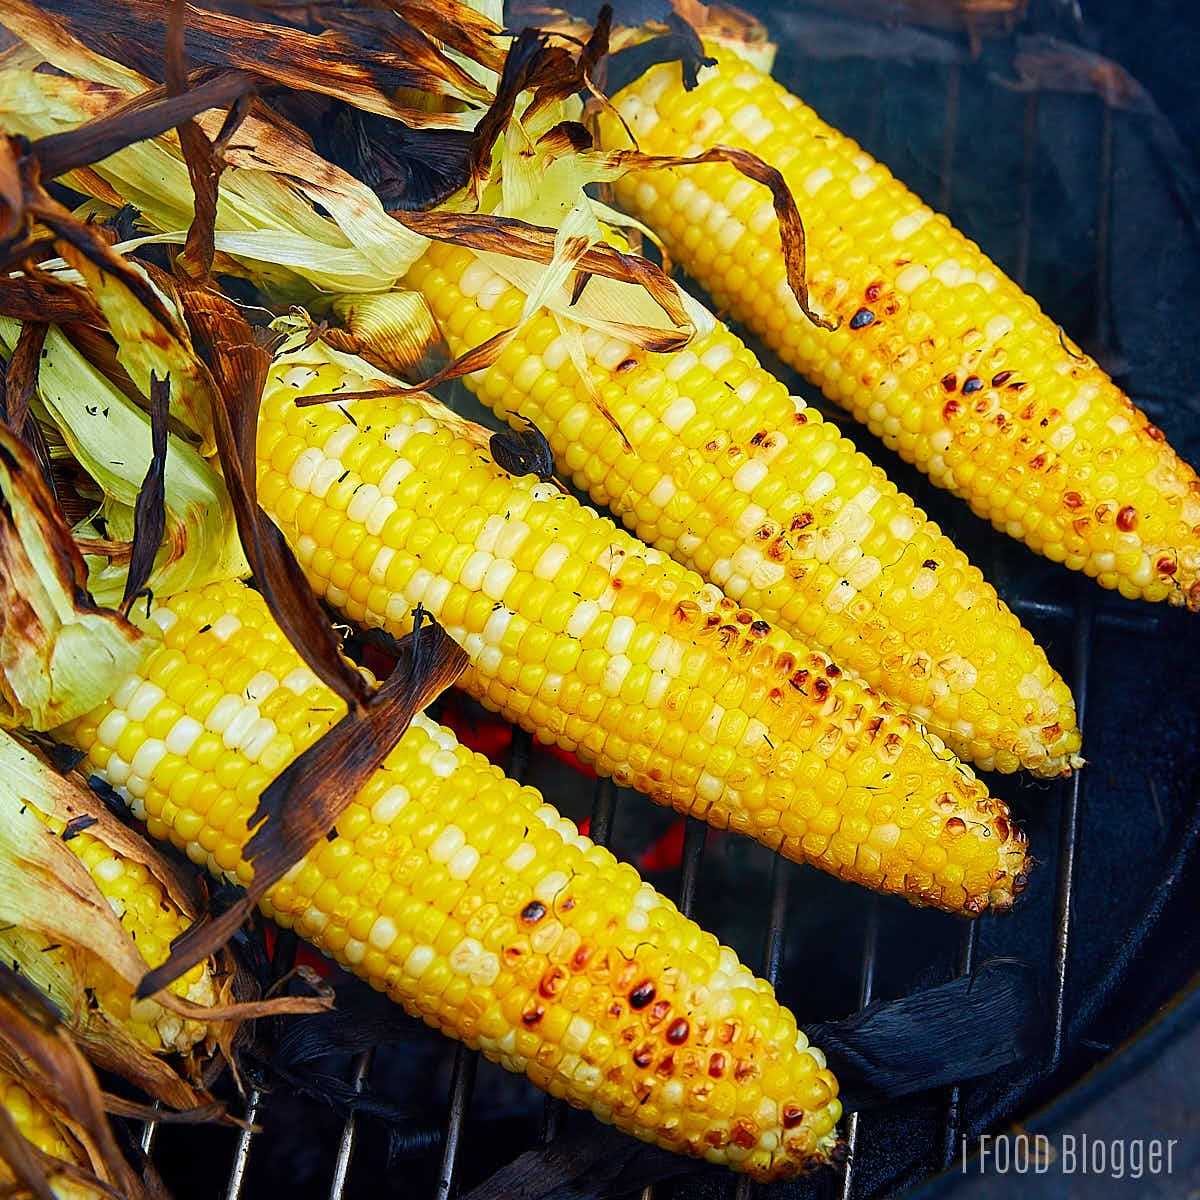 Corn without husks on a charcoal grill.